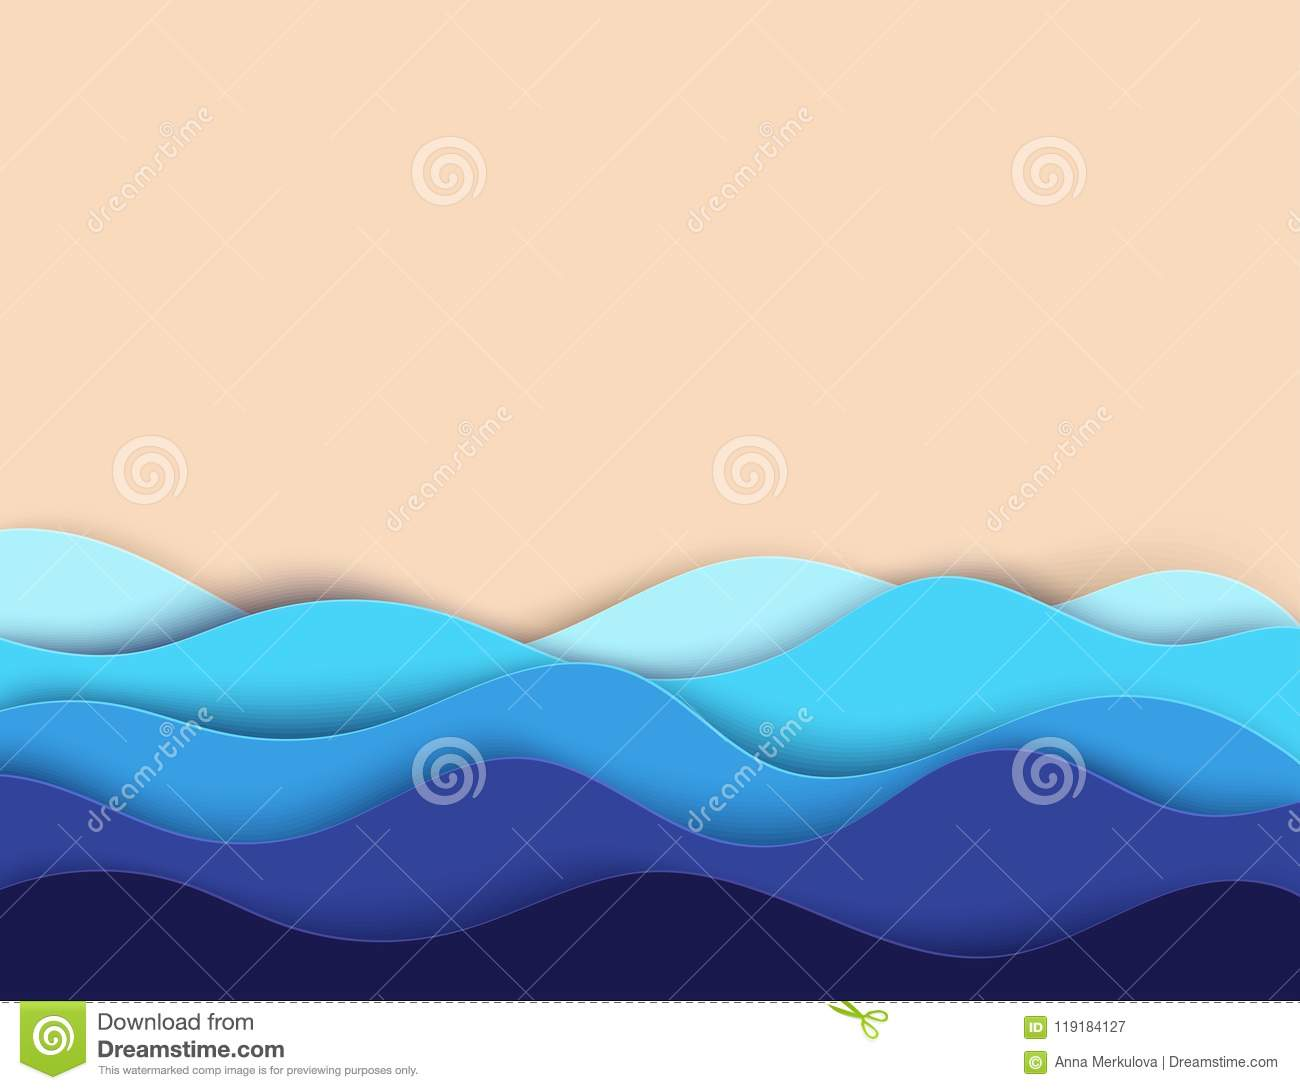 Abstract paper art sea or ocean water waves and beach. Summer